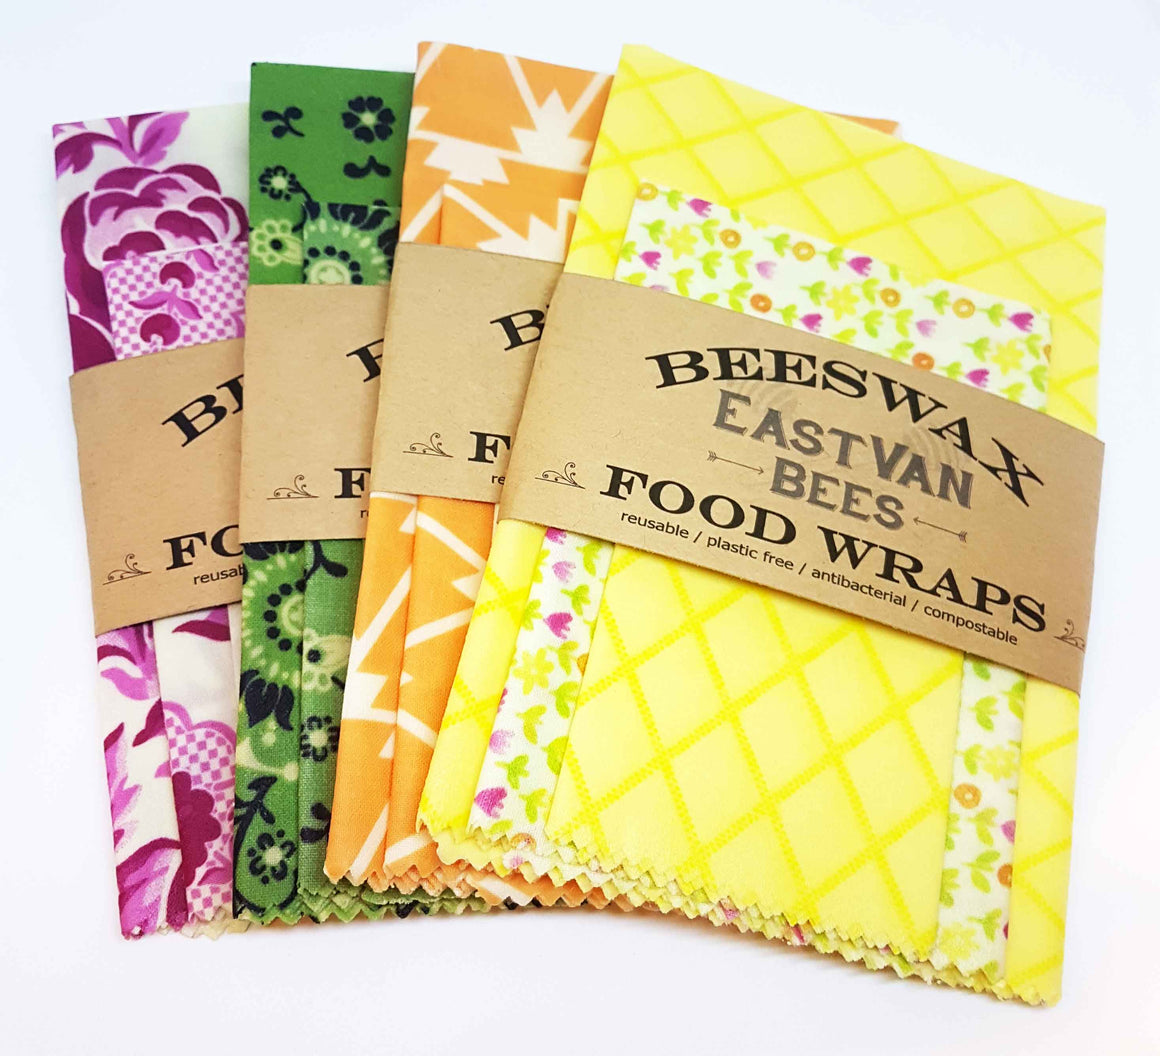 Beeswax Food Wraps - Free Domestic Shipping